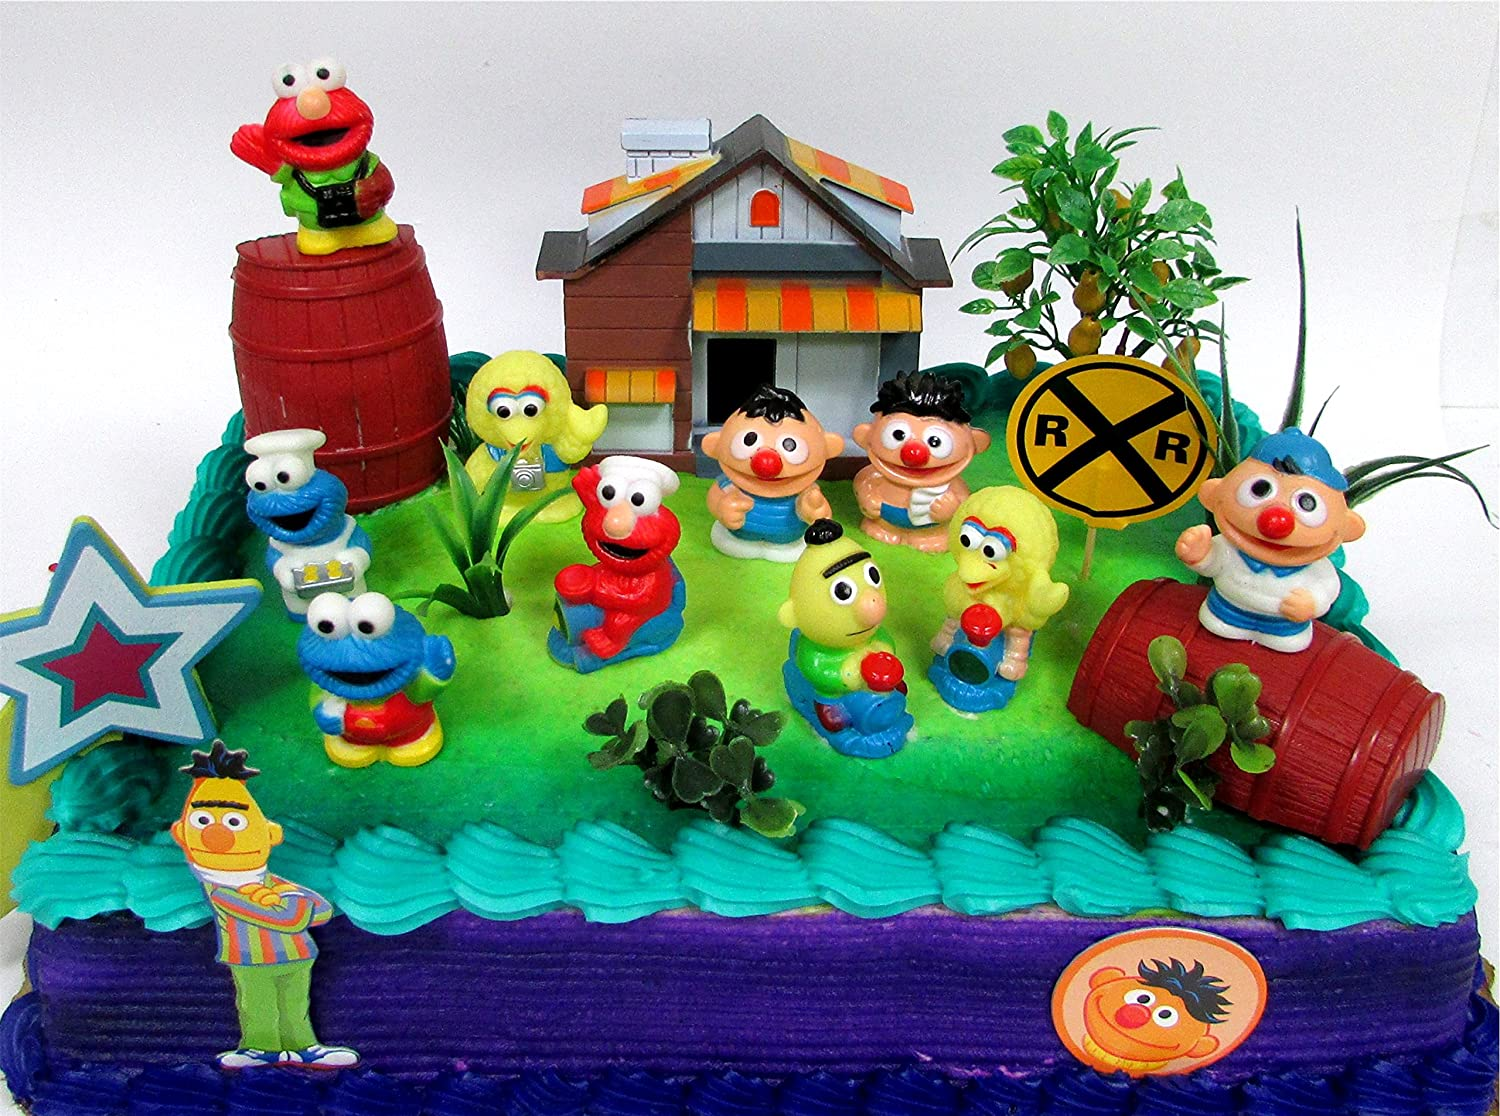 Sesame Street 16 Piece Birthday Cake Topper Featuring Elmo Bert Ernie Cookie Monster Big Bird And Themed Accessories